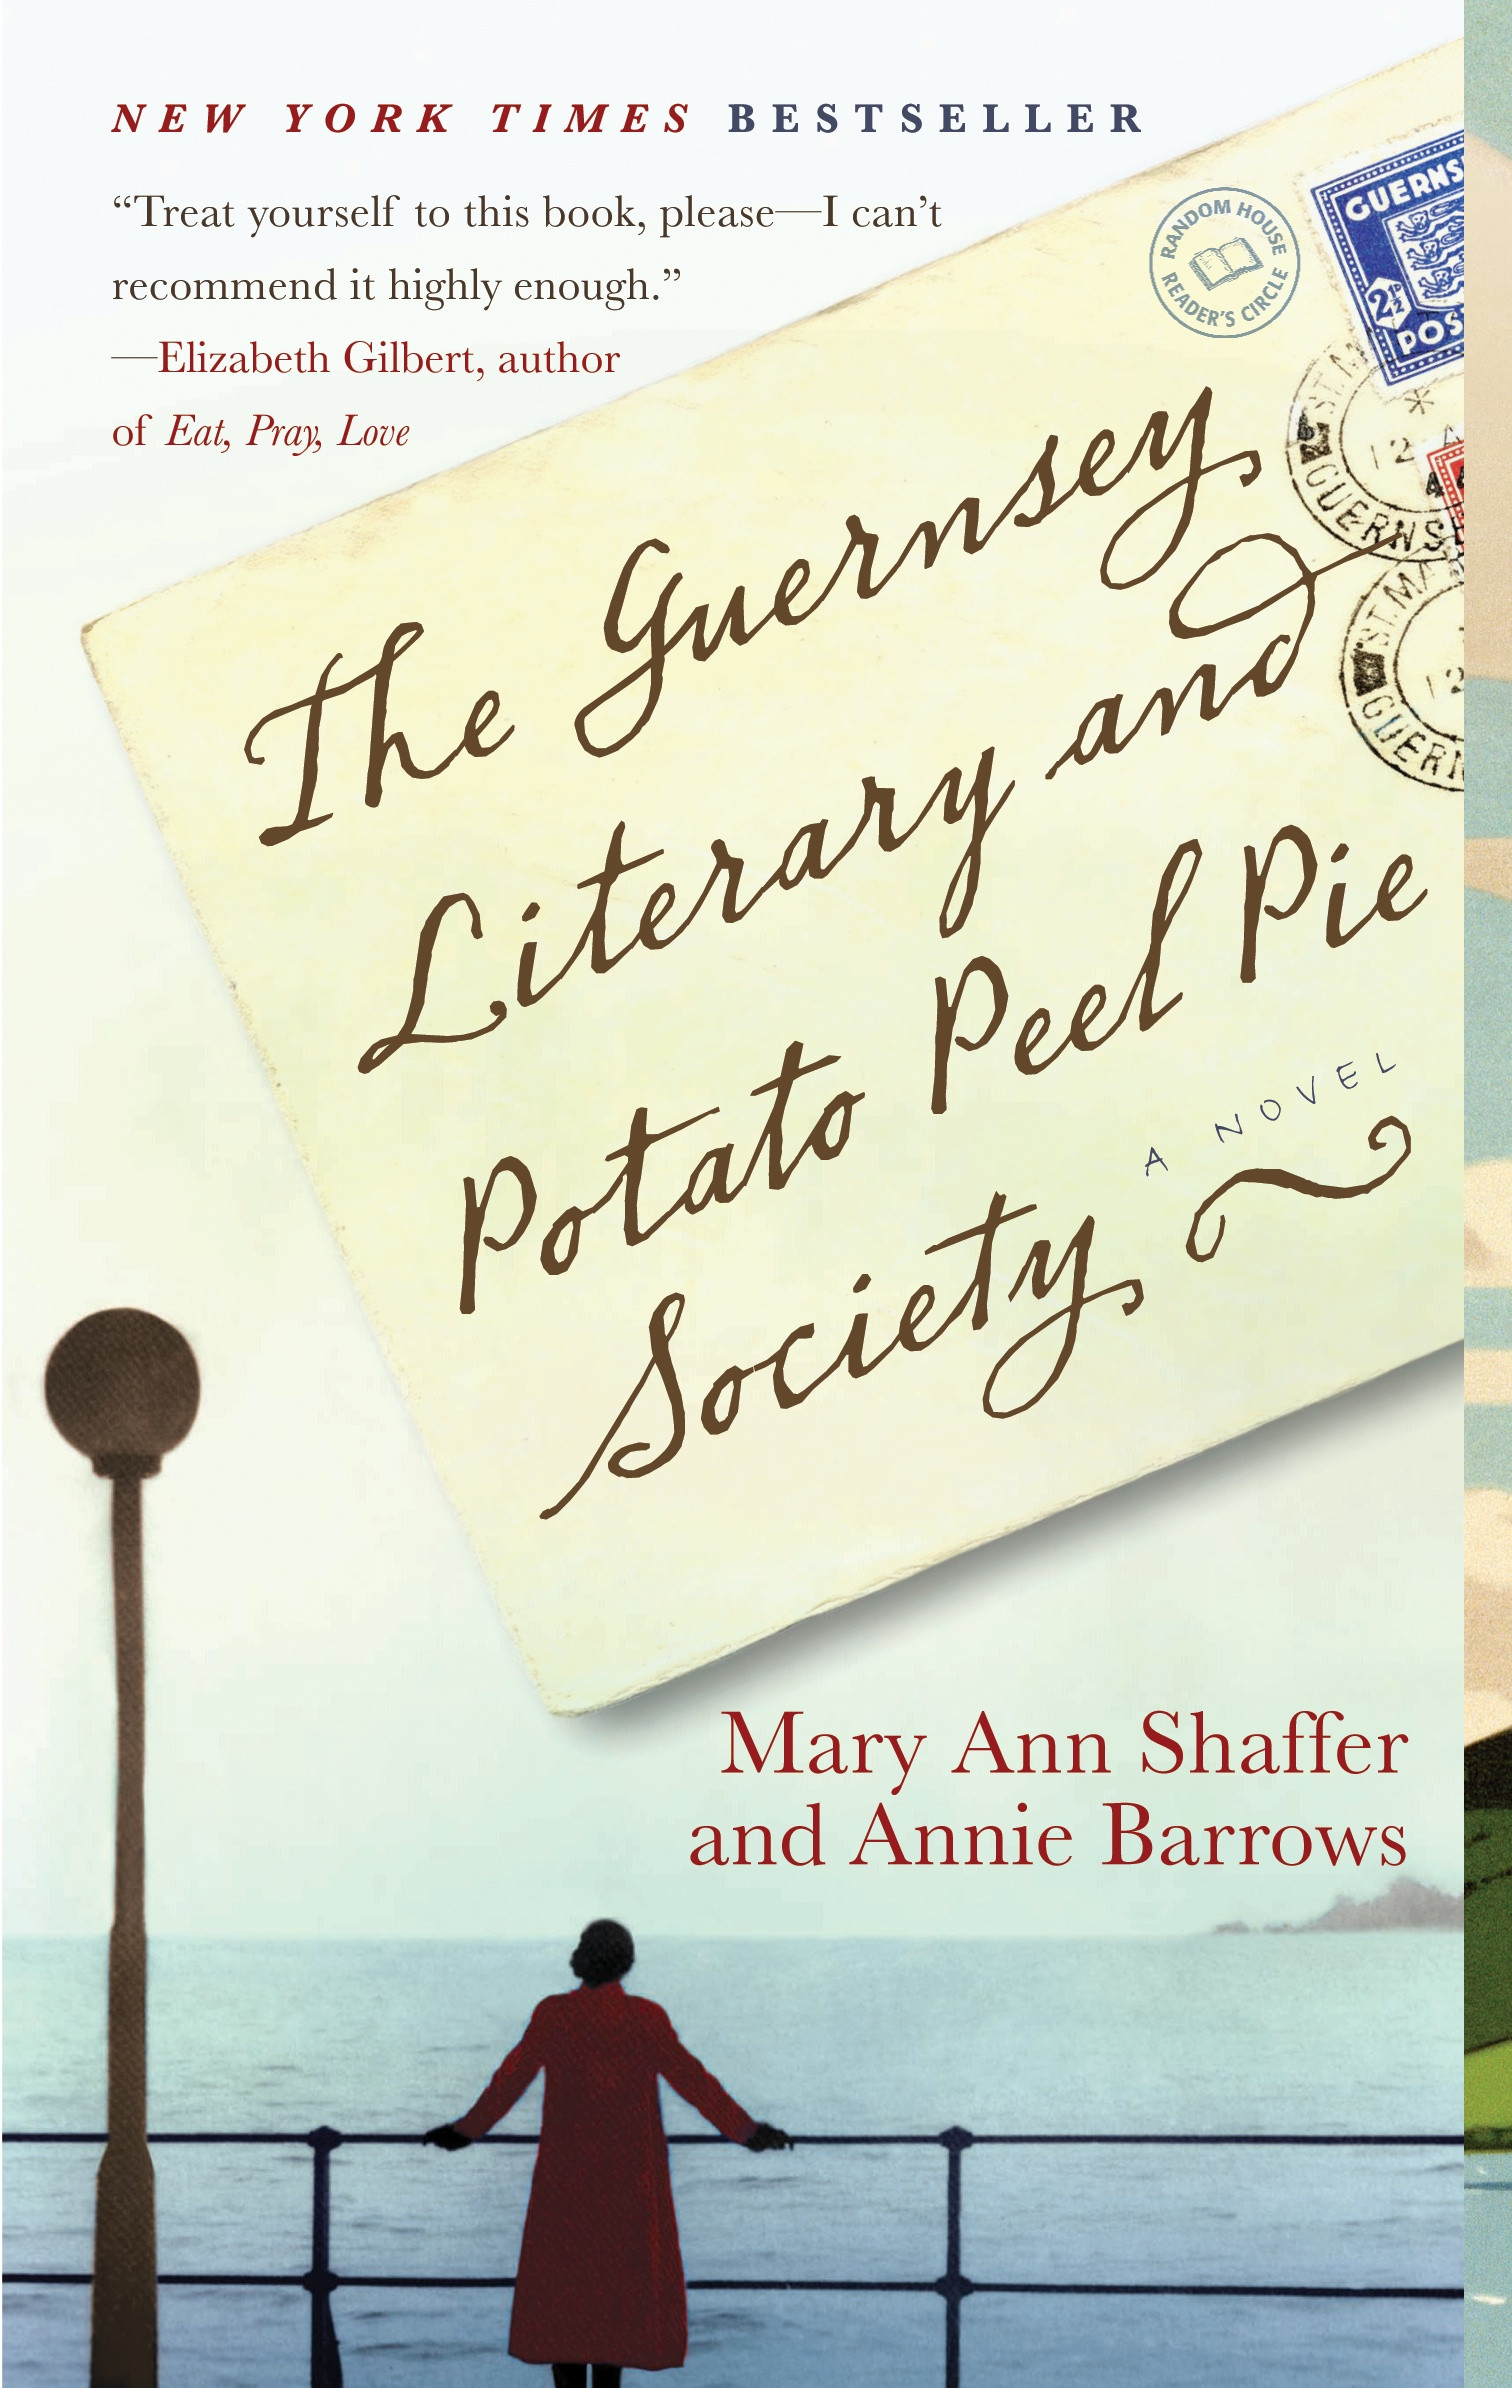 The Guernsey Literary And Potato Peel Pie Society Book  Book Review The Guernsey Literary and Potato Peel Pie